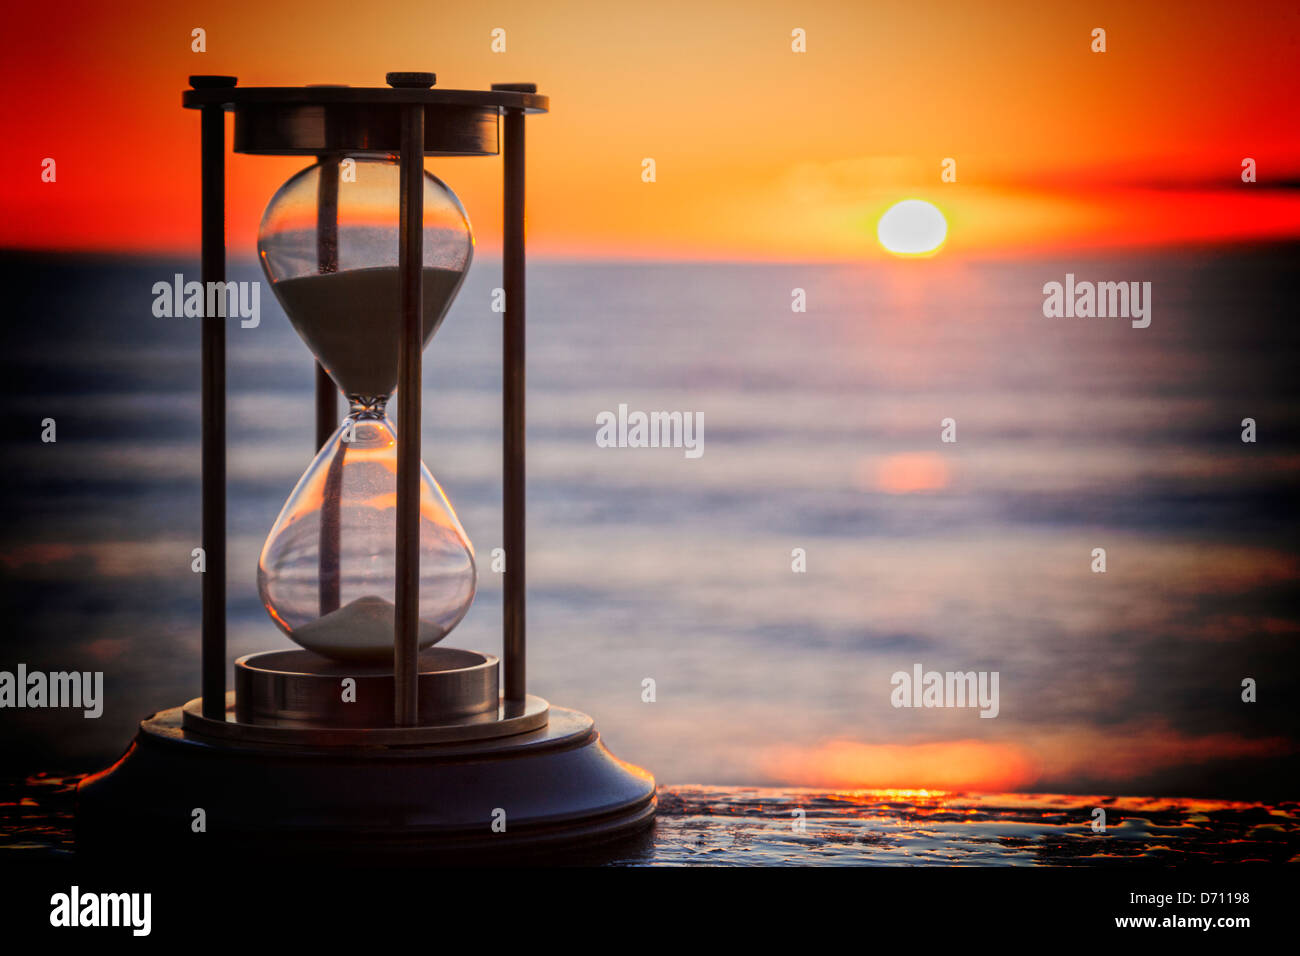 Sand Timer at Sunrise - Sand timer on a wooden ledge, looking out over a sunrise. - Stock Image